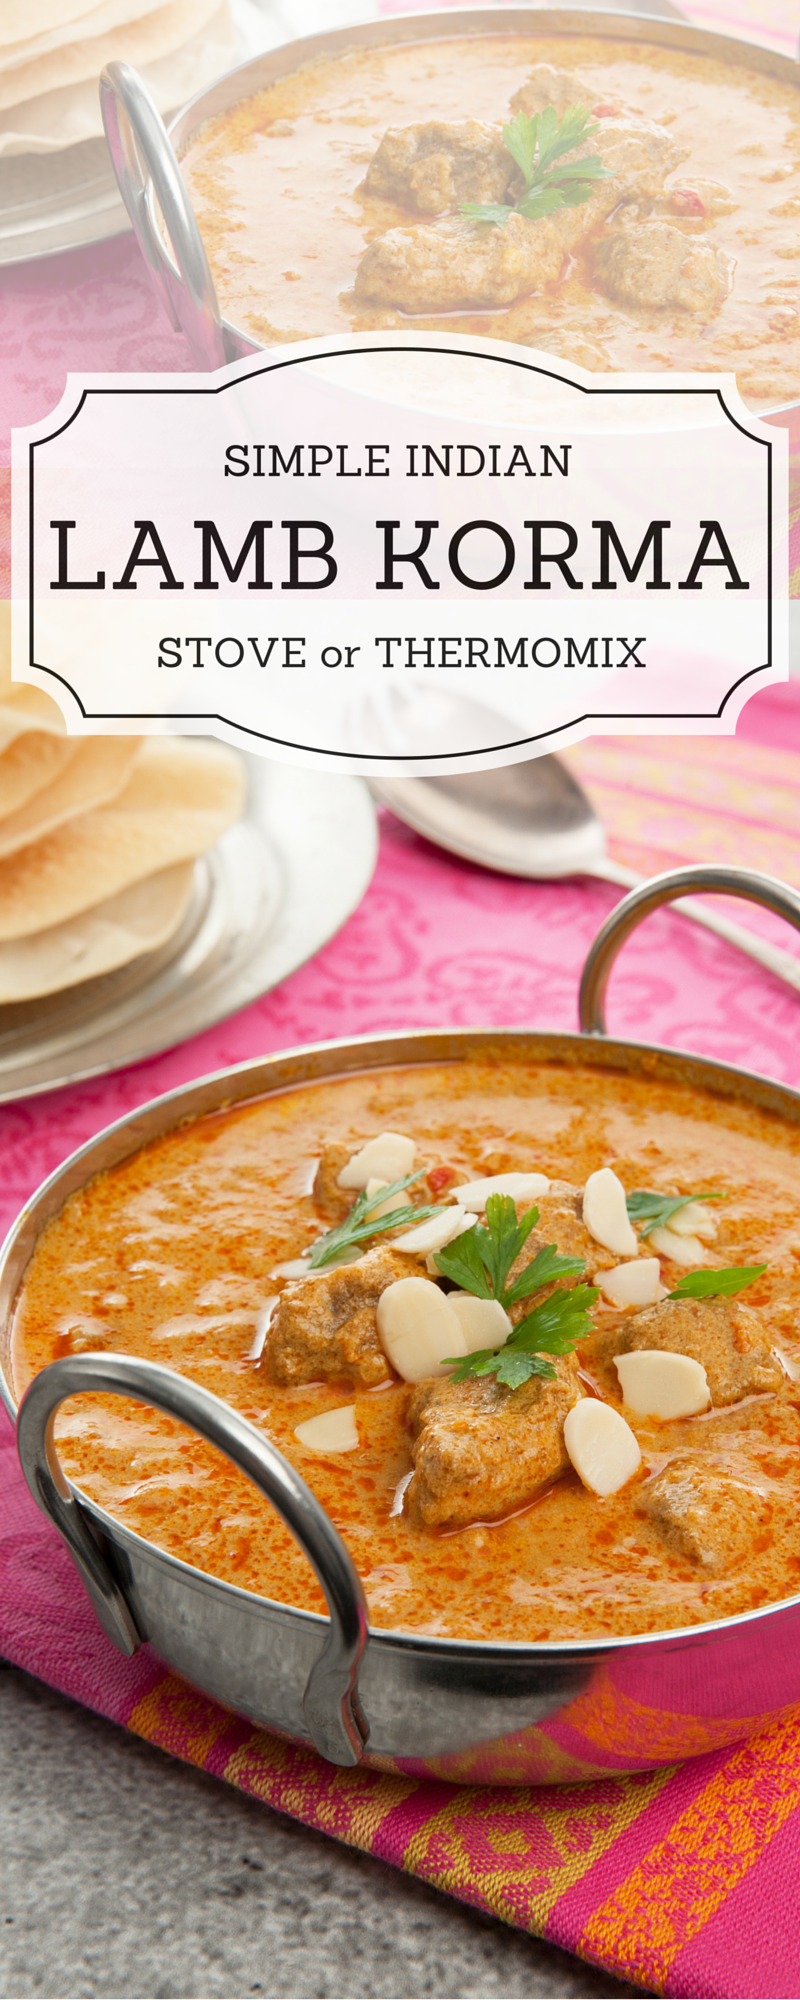 Deliciously simple lamb korma recipe you will make this again and deliciously simple lamb korma recipe you will make this again and again amazing indian food recipe includes thermomix instructions and traditional forumfinder Choice Image